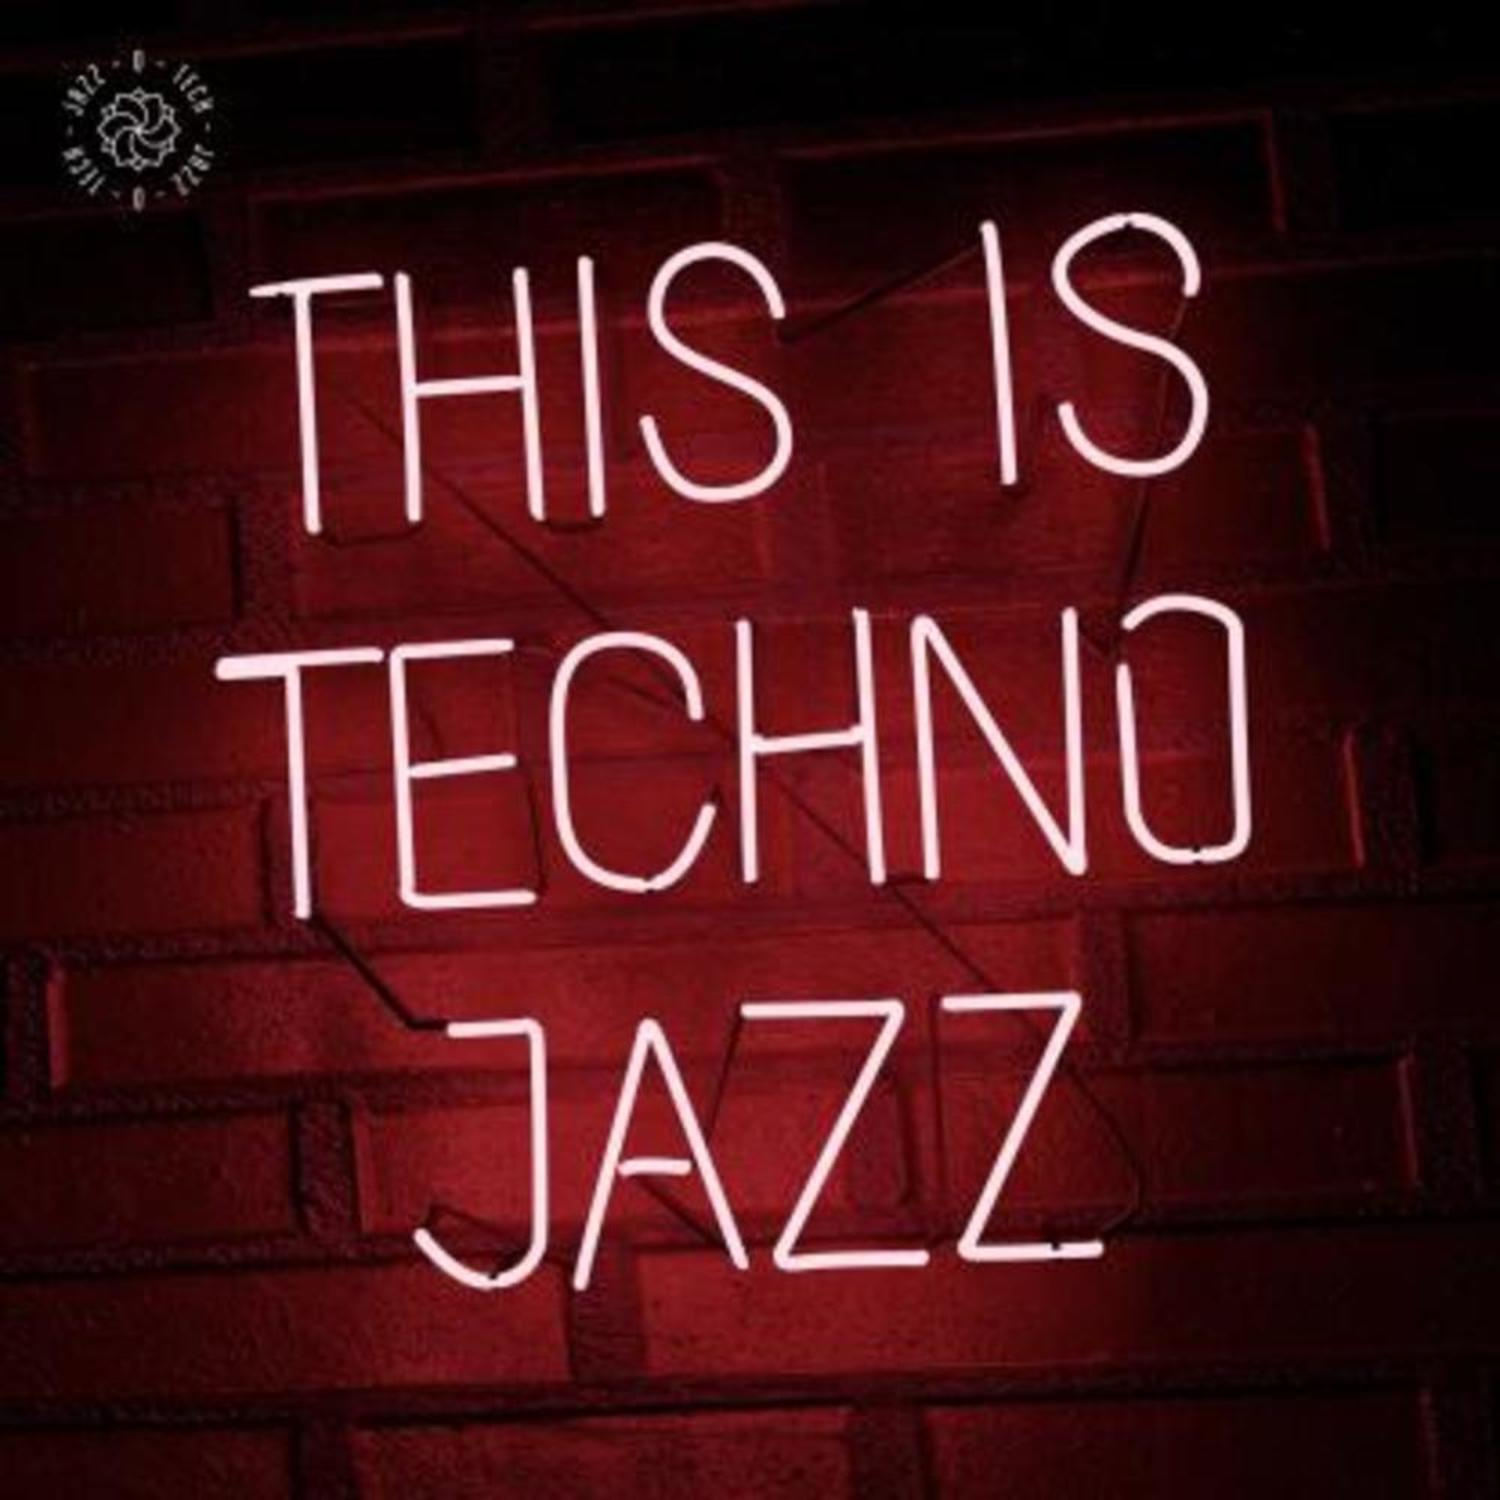 Various Artists - THIS IS TECHNO JAZZ VOL. I